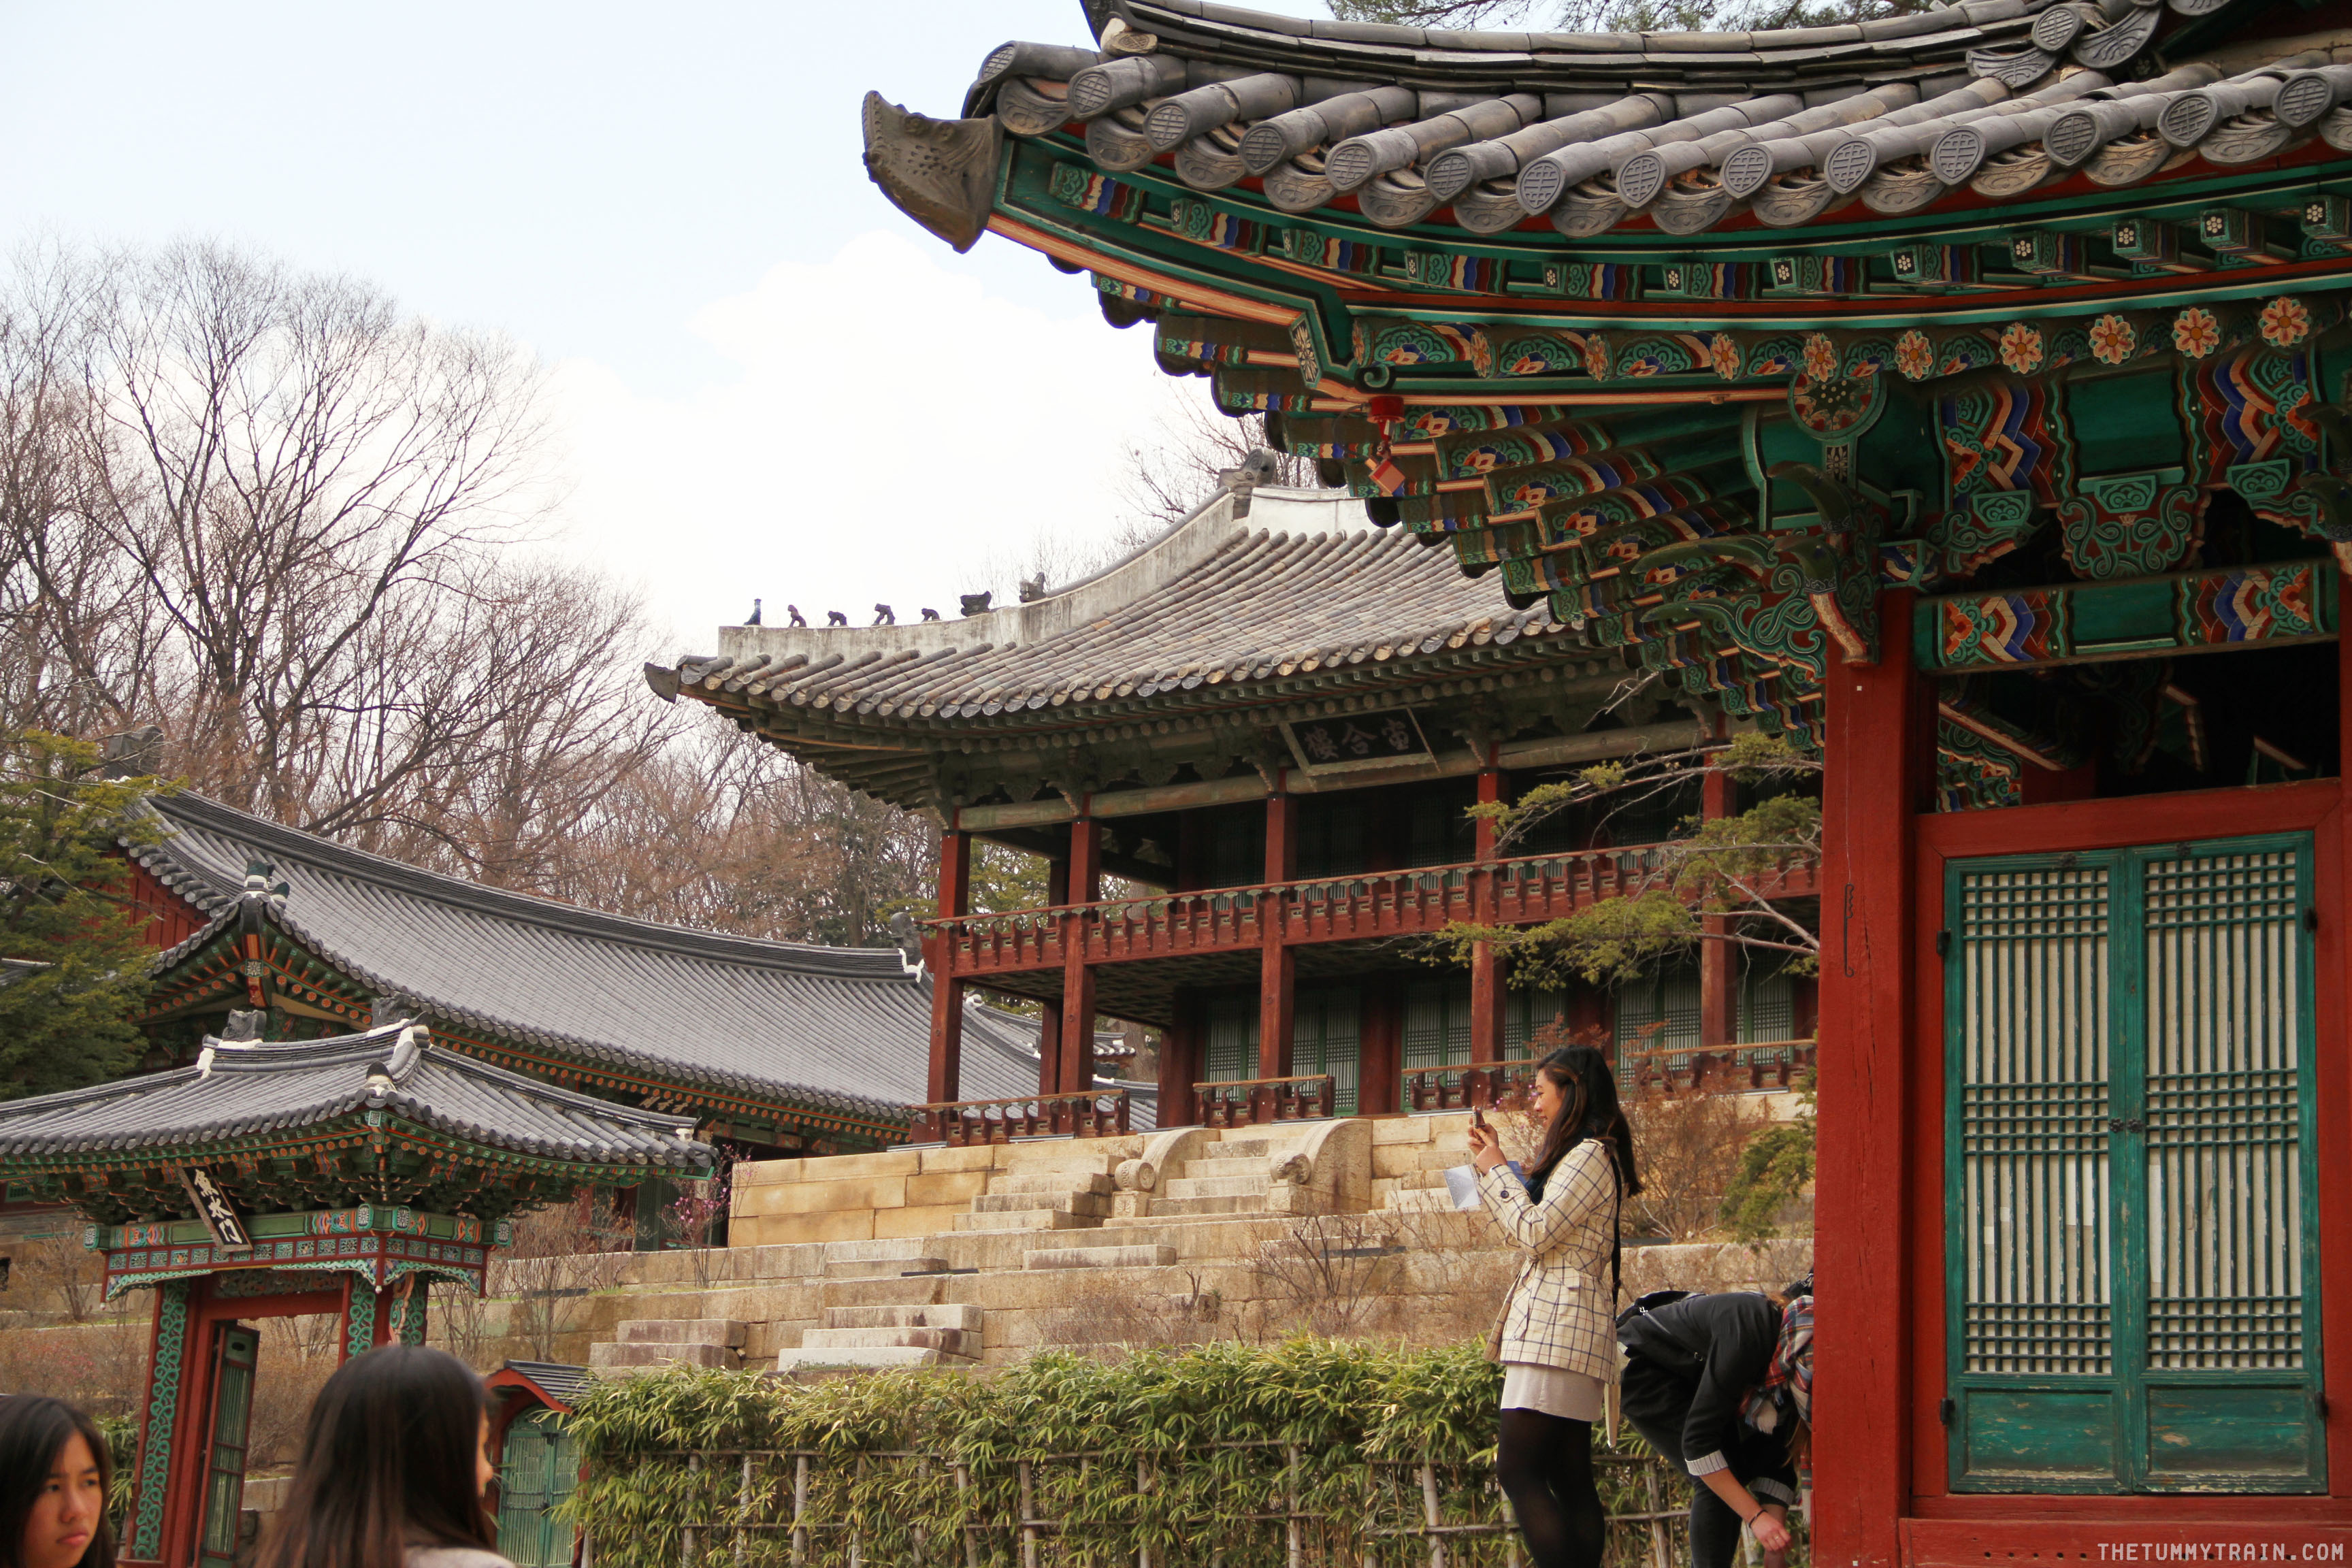 Changdeokgung COVER - Seoul-ful Spring 2016: Greeting the first blooms at Changdeokgung Palace